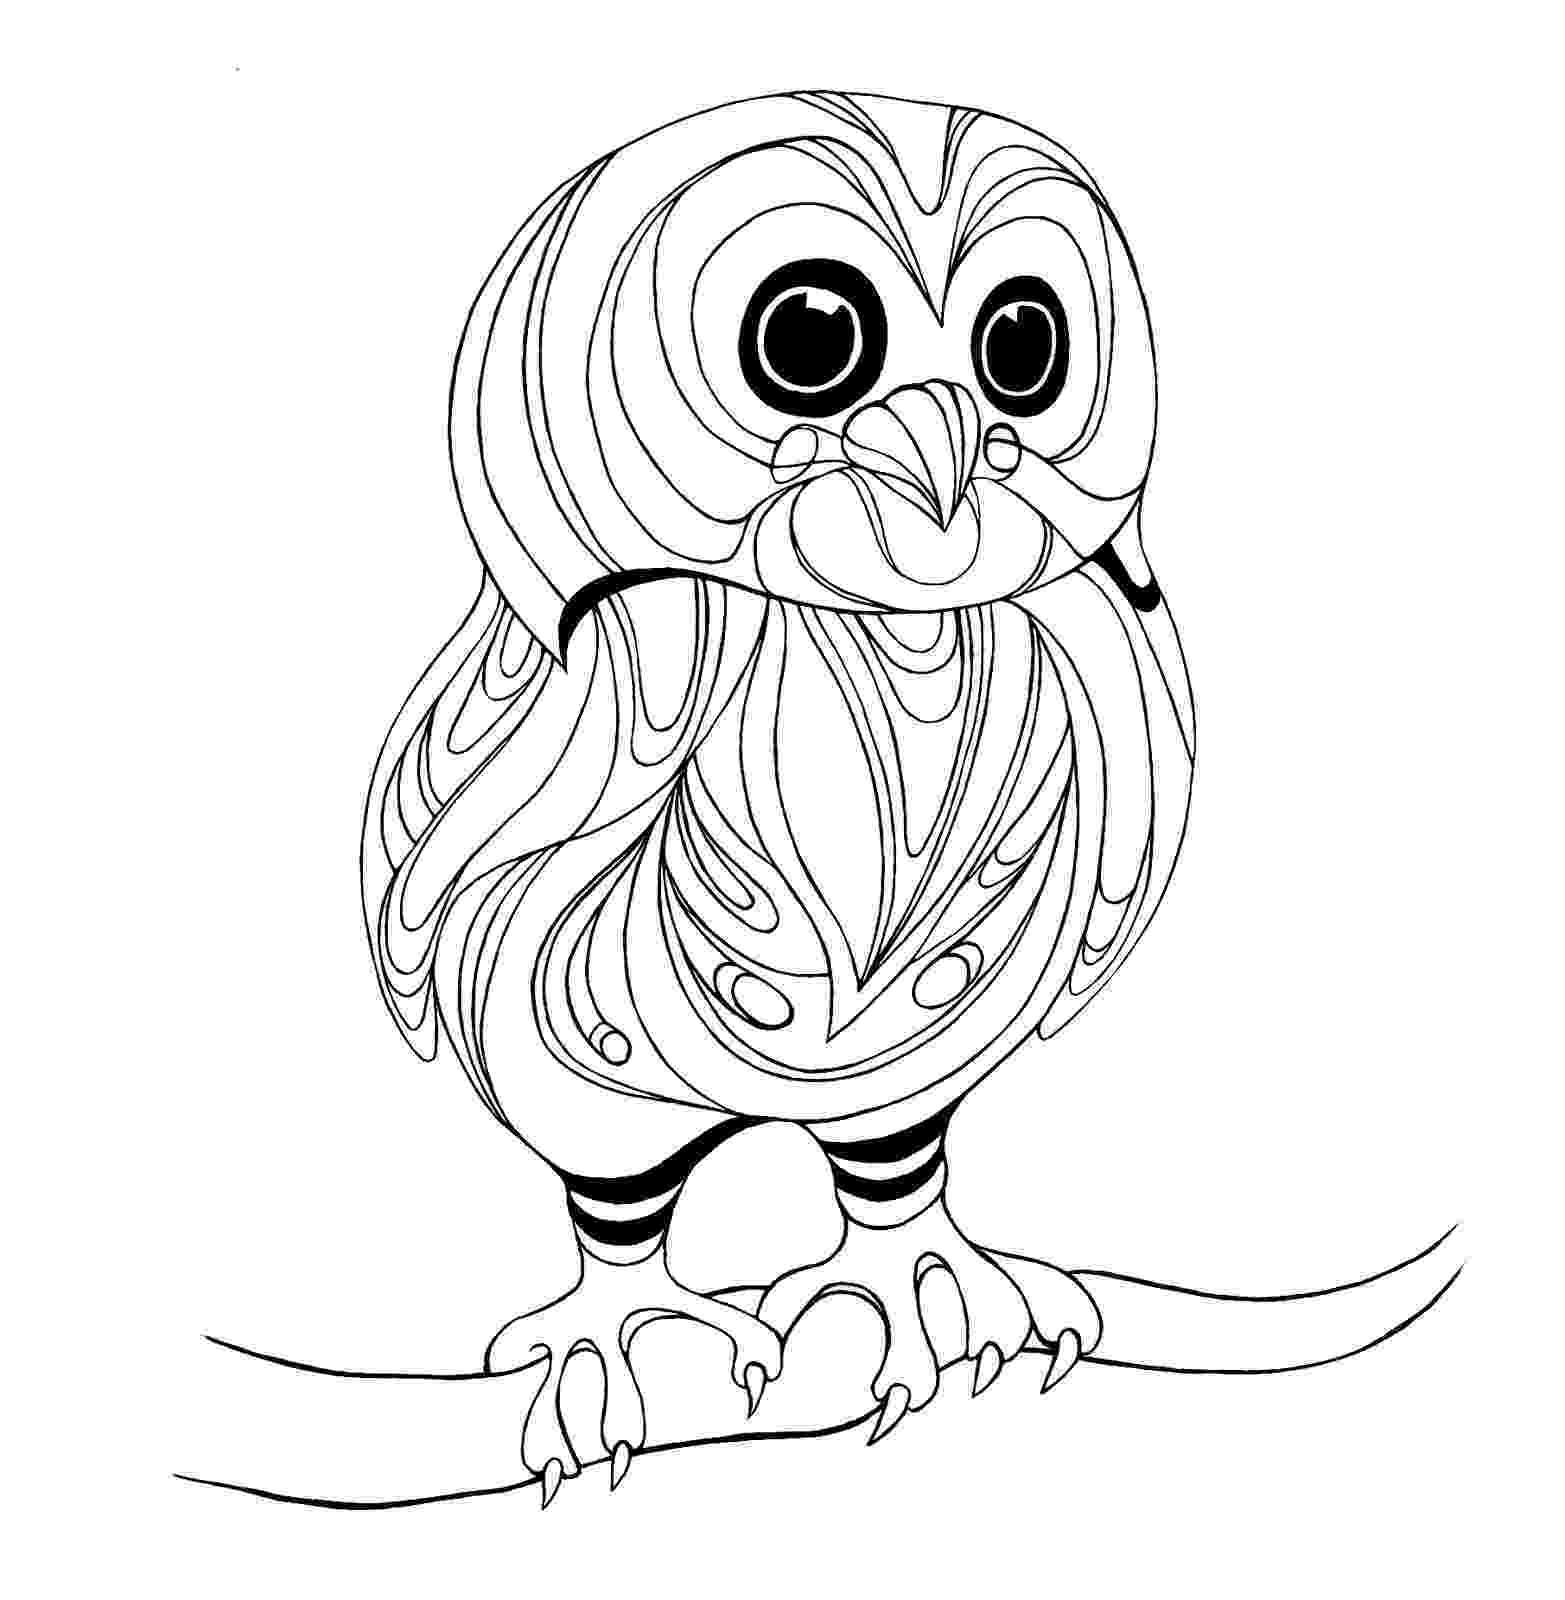 printable owl images owl coloring pages owl coloring pages owl printable images